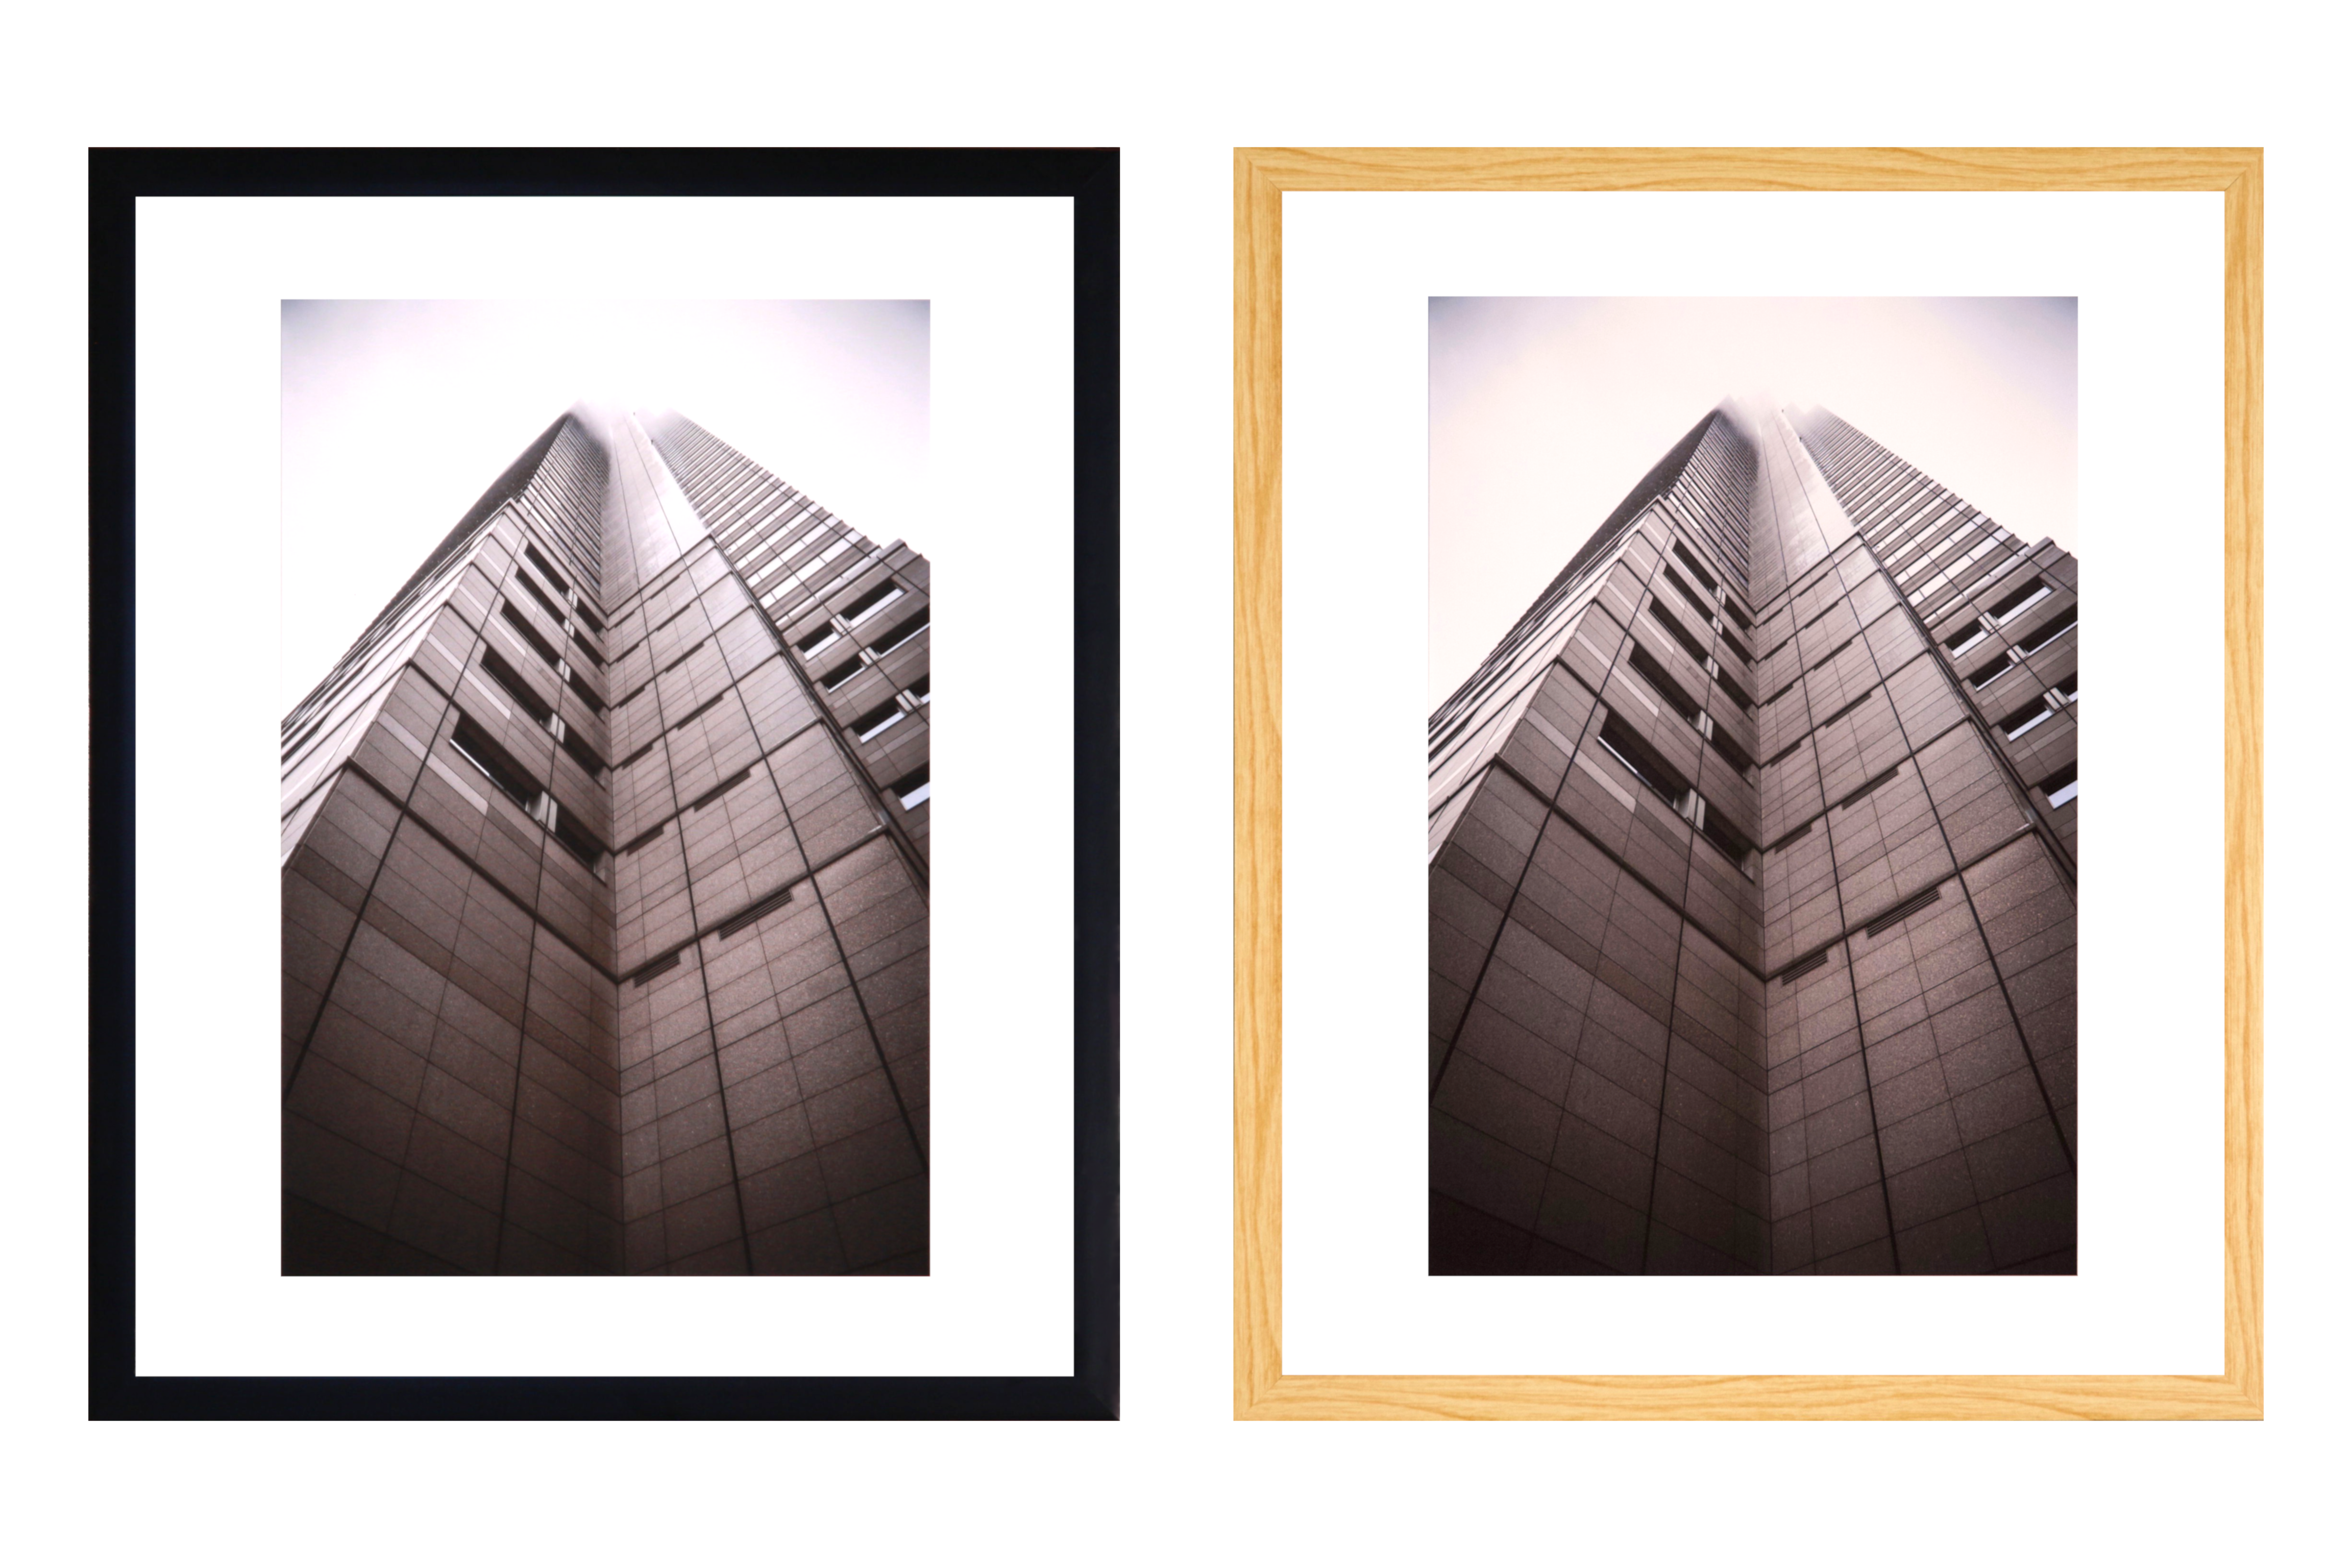 16x20 black and birch picture frames by Out Of Focus